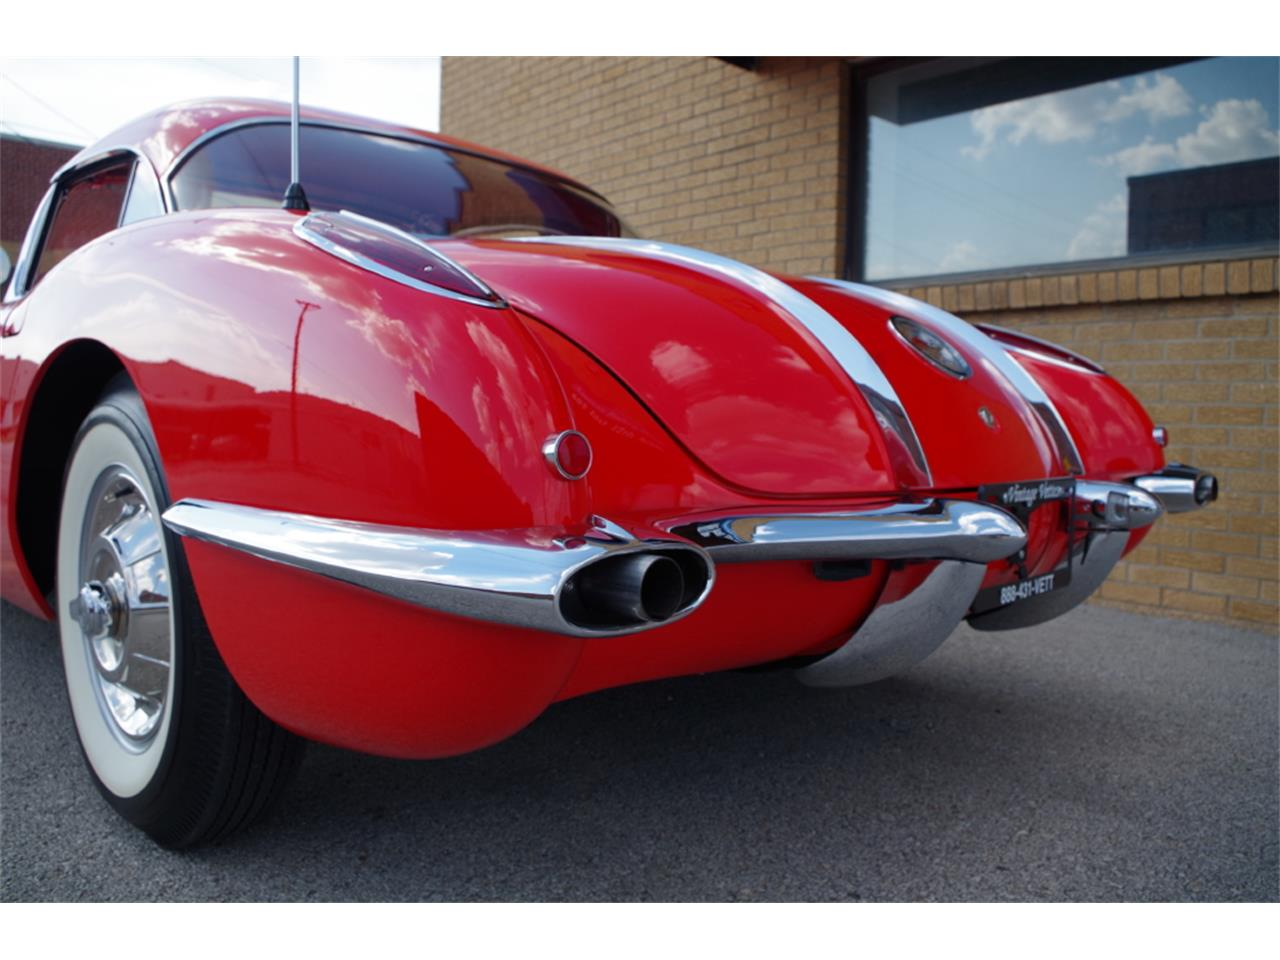 Large Picture of Classic 1958 Chevrolet Corvette - $139,900.00 Offered by Vintage Vettes, LLC - R23F